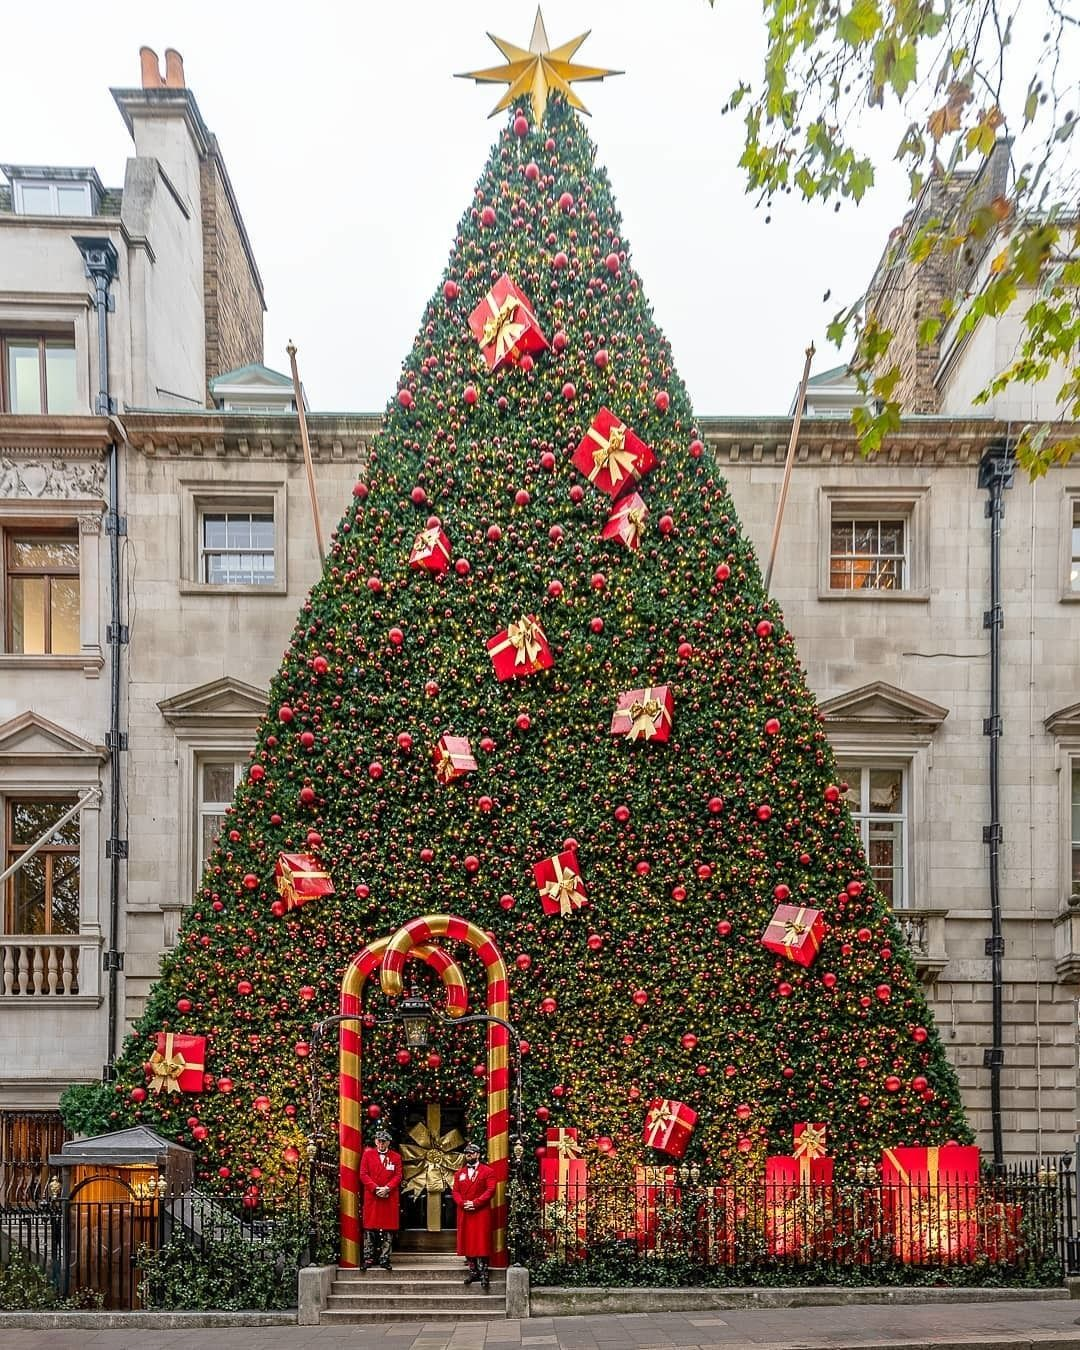 Secret London On Instagram The Best Christmas Tree So Far This Year Has Got To Be This Magical Ent London Christmas Cool Christmas Trees Funny Christmas Tree